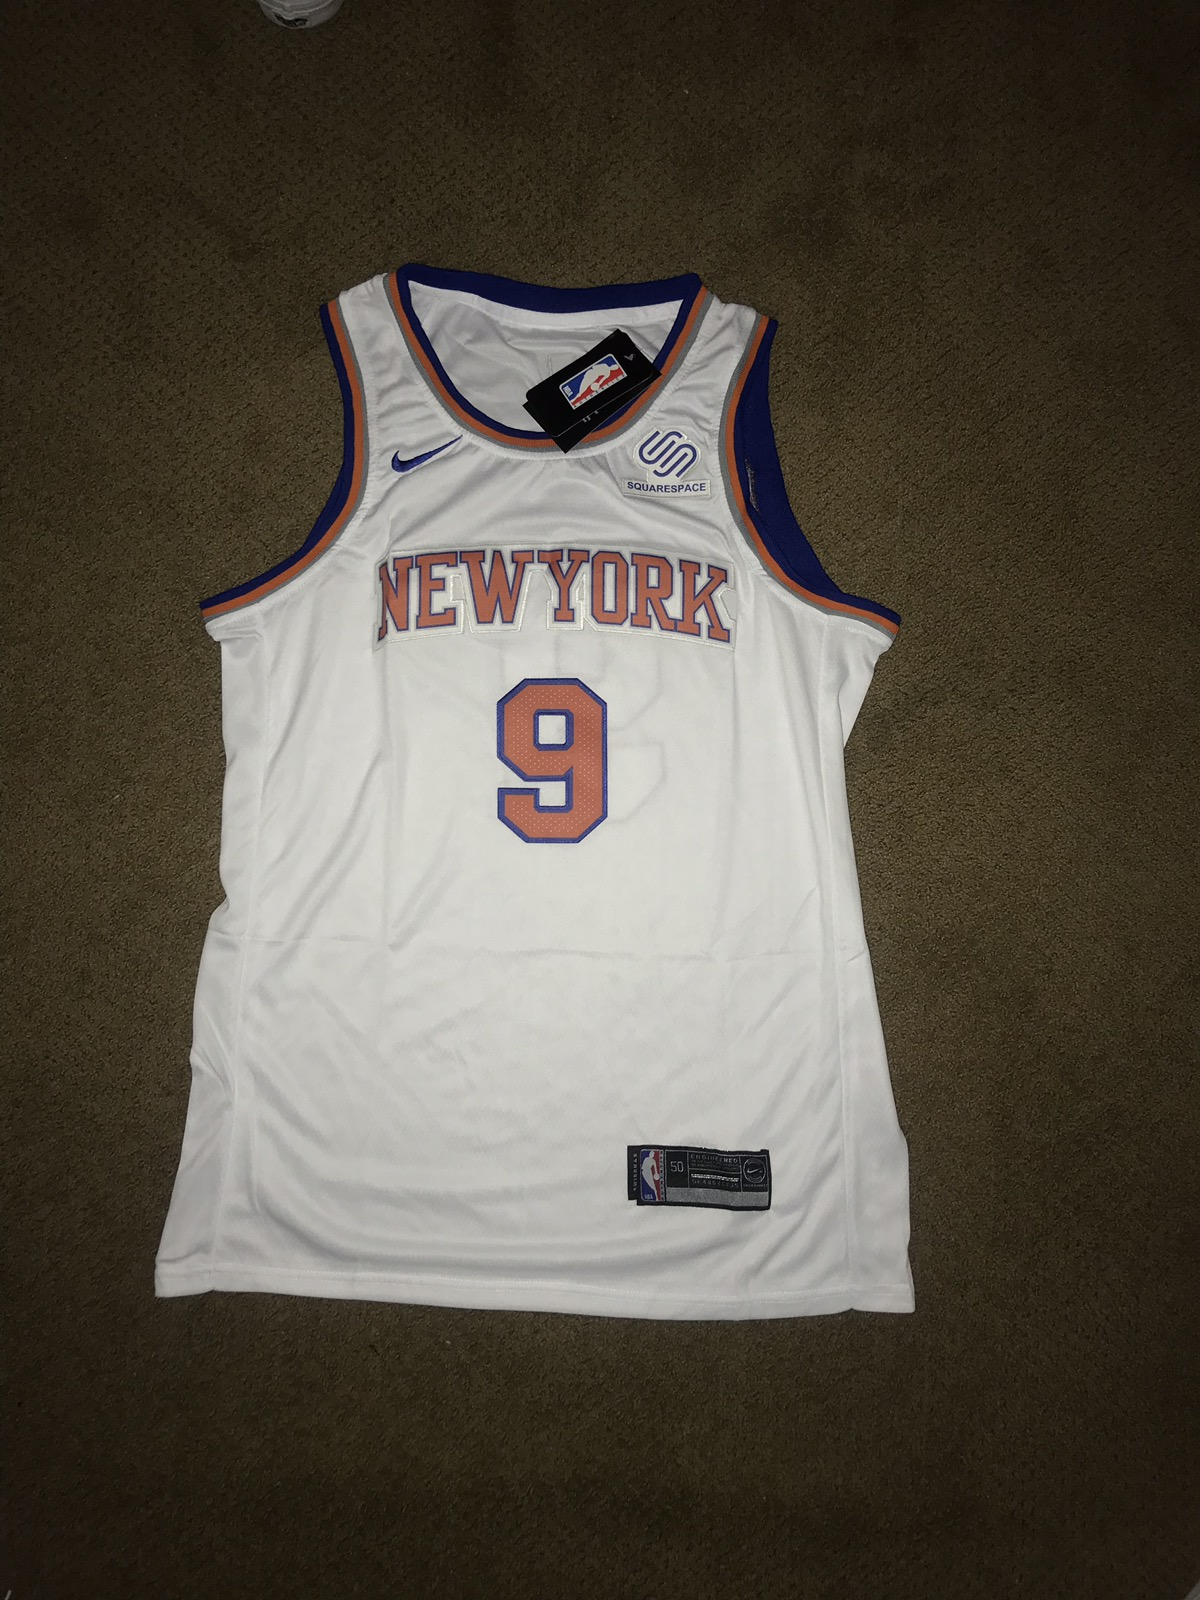 promo code da9de 376fc RJ Barrett Duke Nike New York Knicks NBA Supreme Jersey